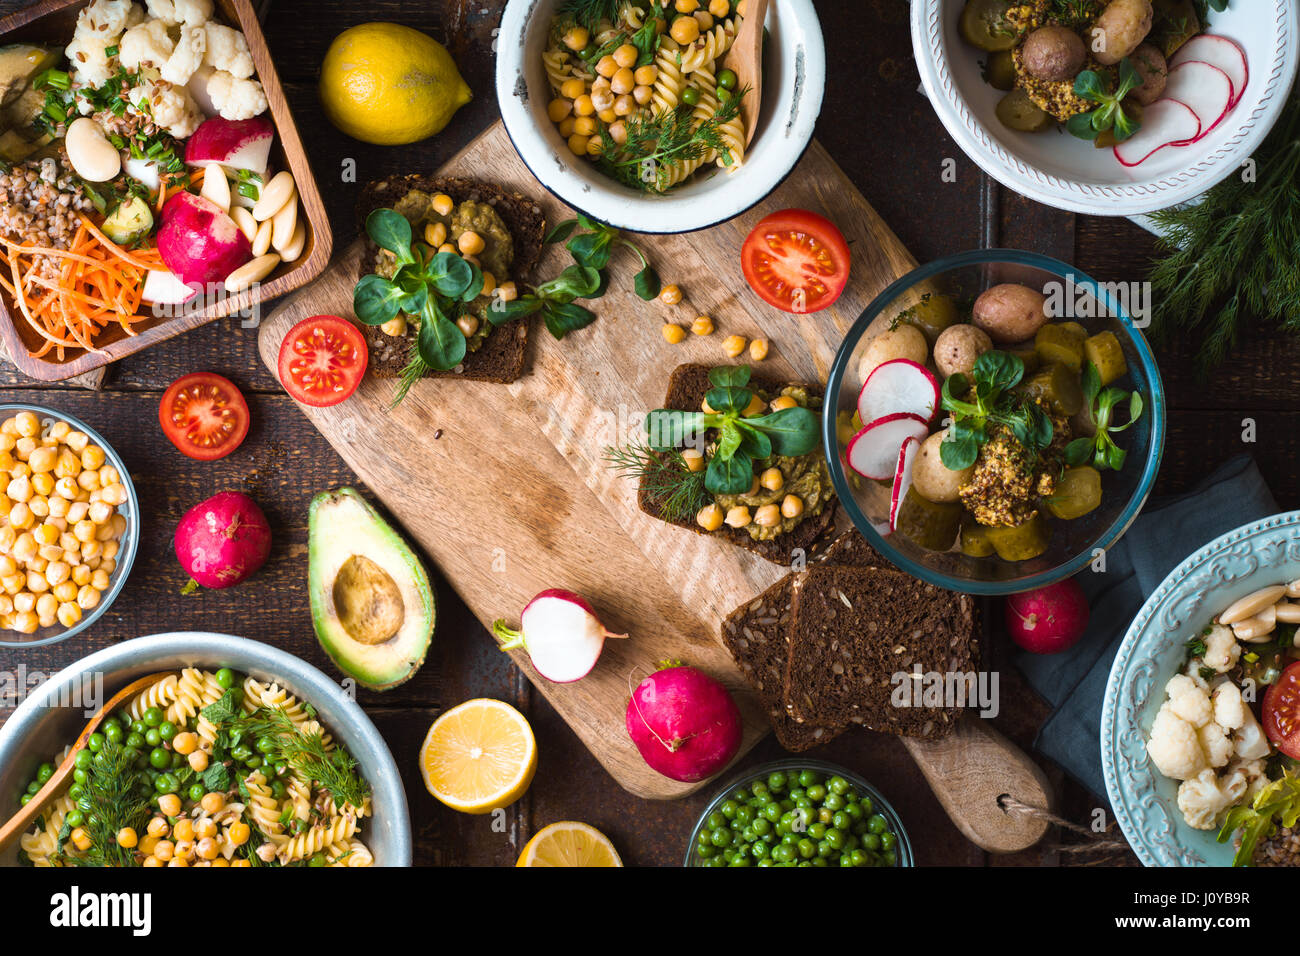 Feast with various salads and sandwiches horizontal - Stock Image